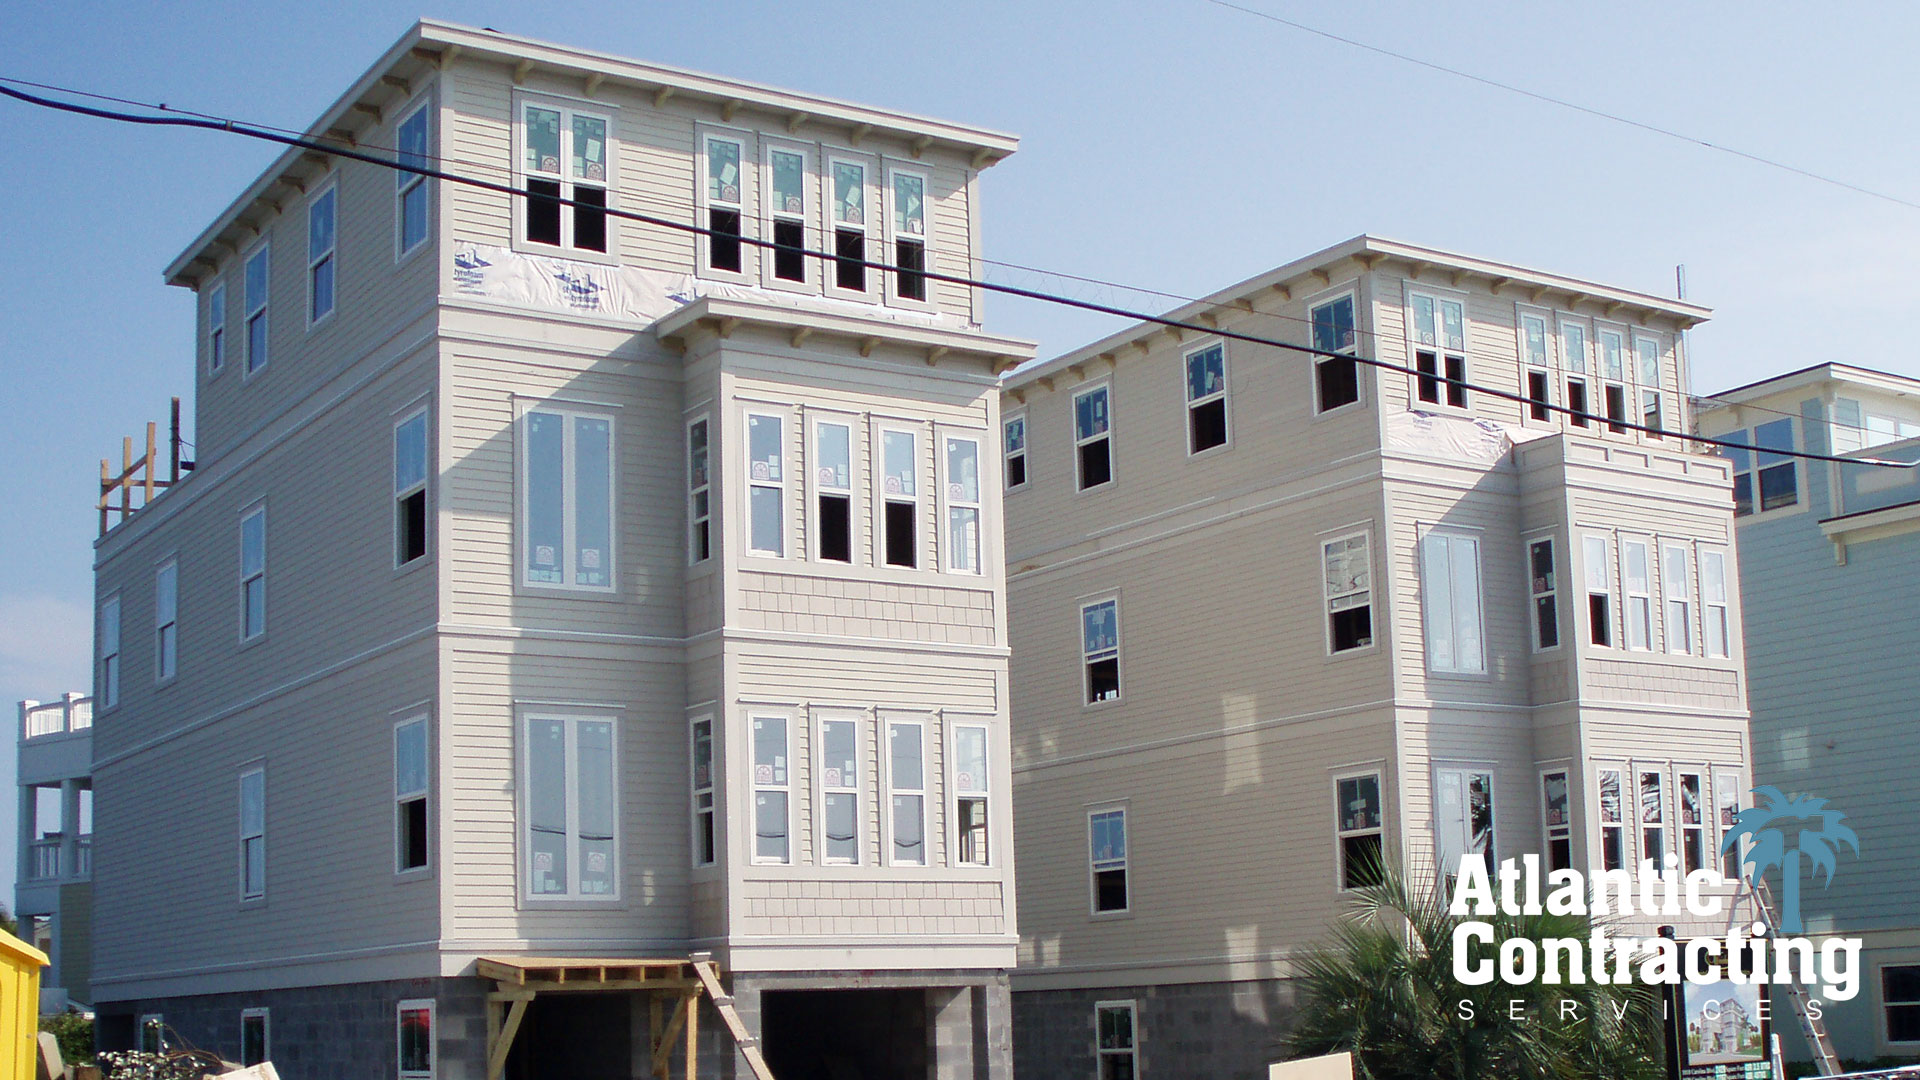 Isle Of Palms 29451 Atlantic Contracting Services